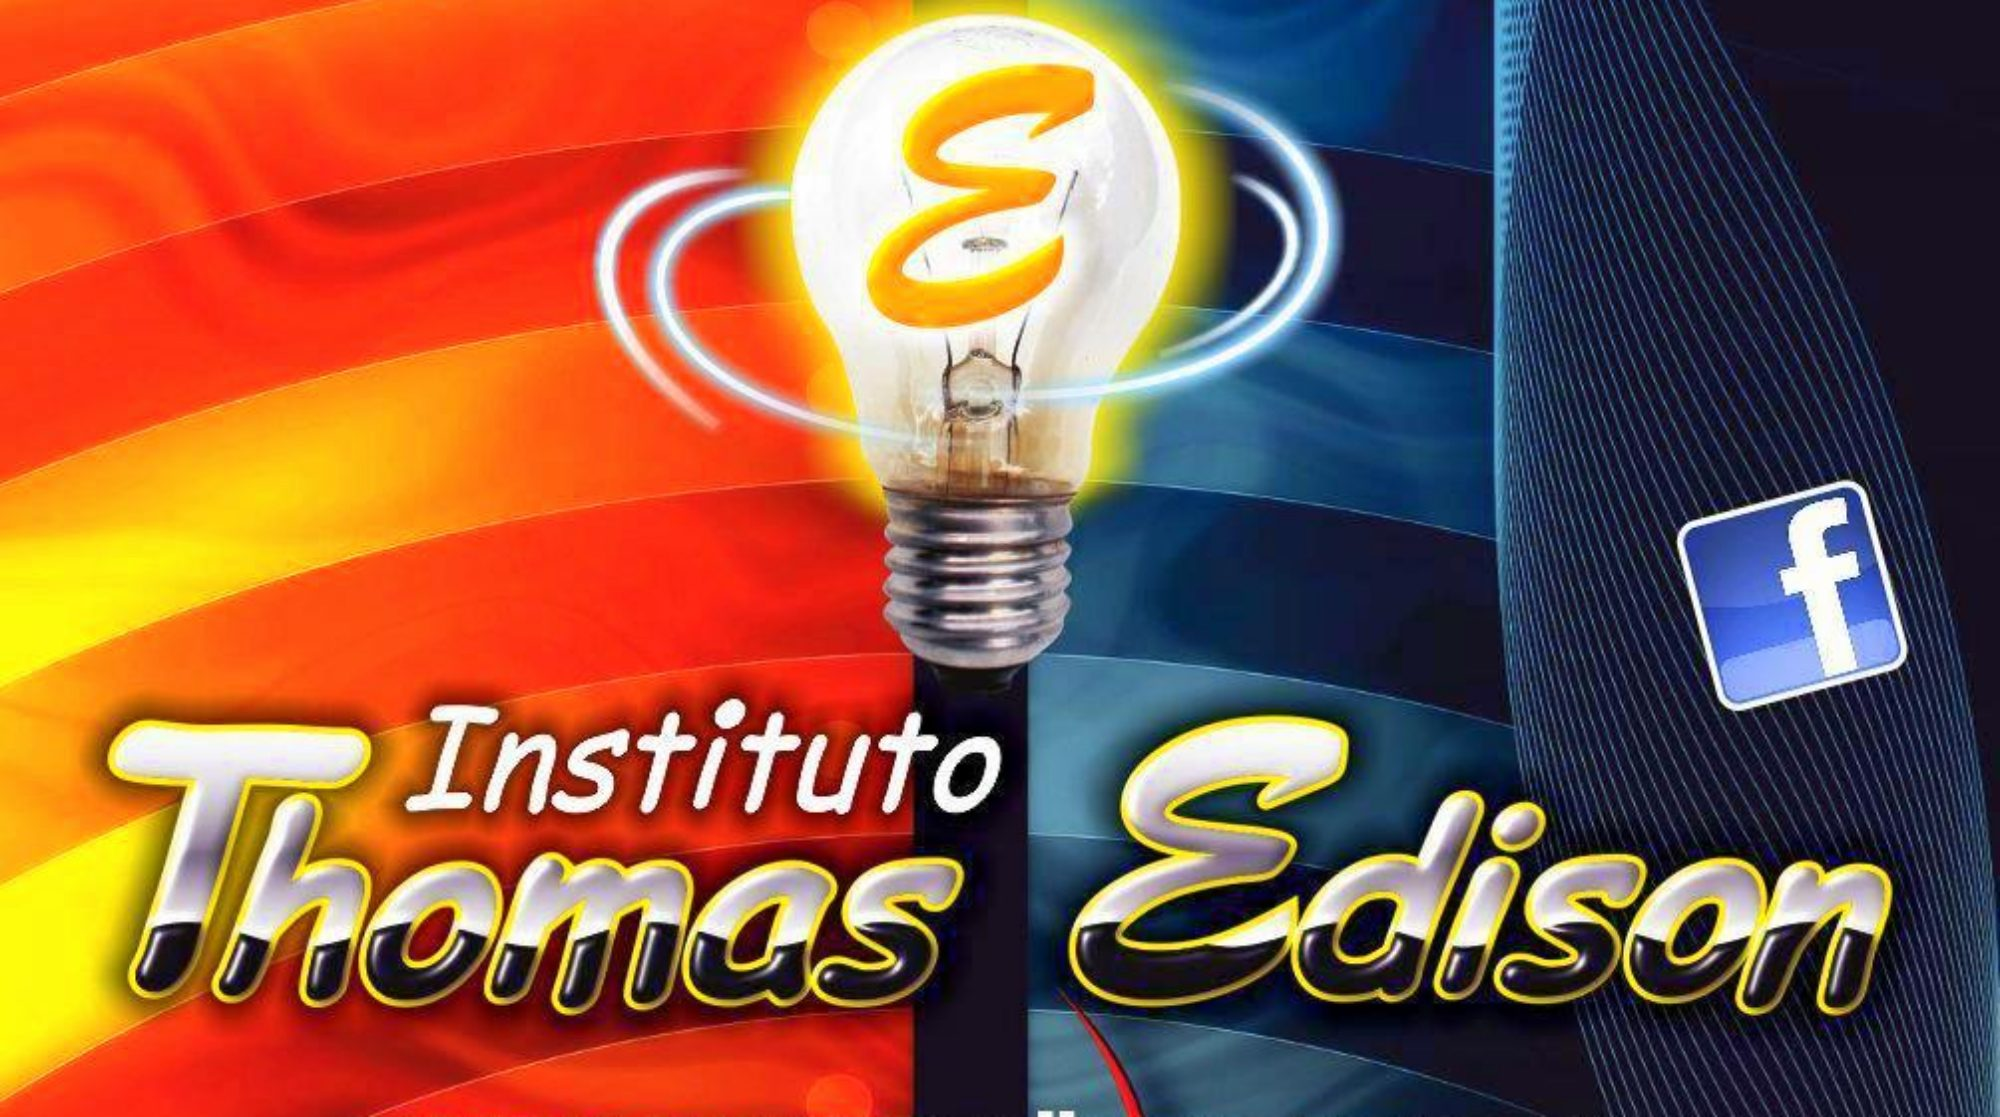 Instituto Thomas Edison